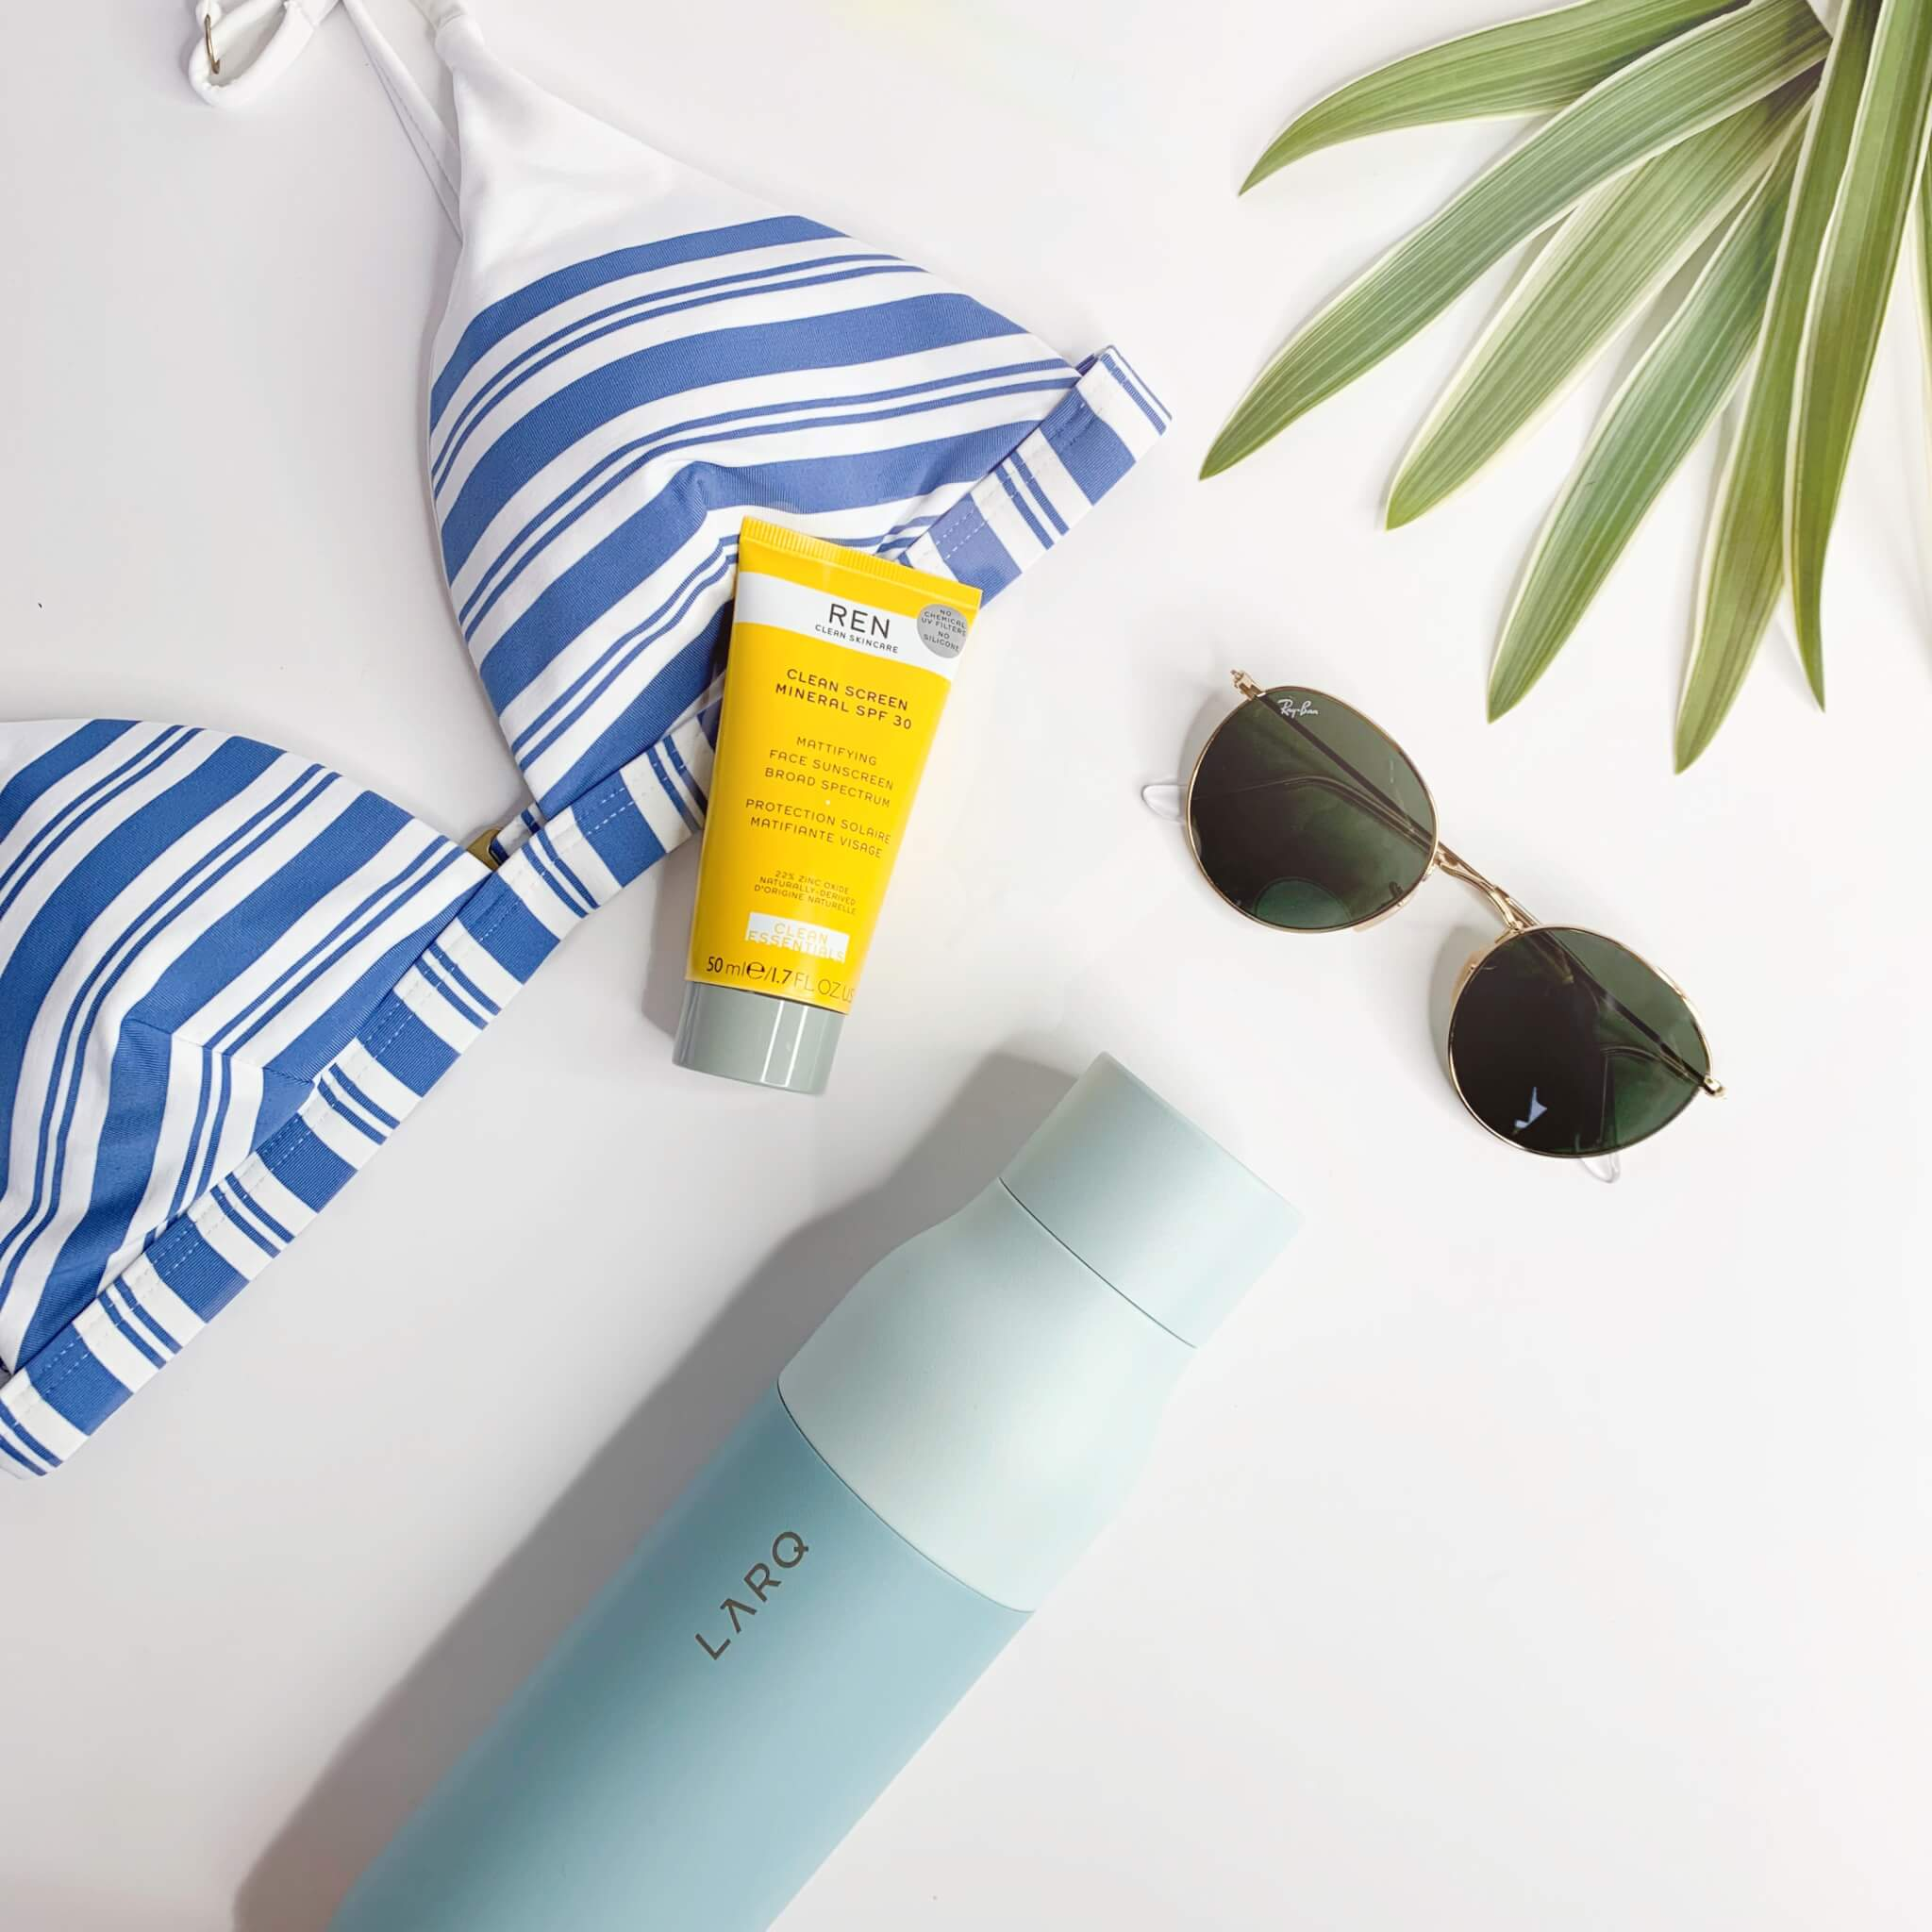 Seaside Mint LARQ Bottle with Vitamin A swimsuit and REN skincare mineral reef-safe sunscreen